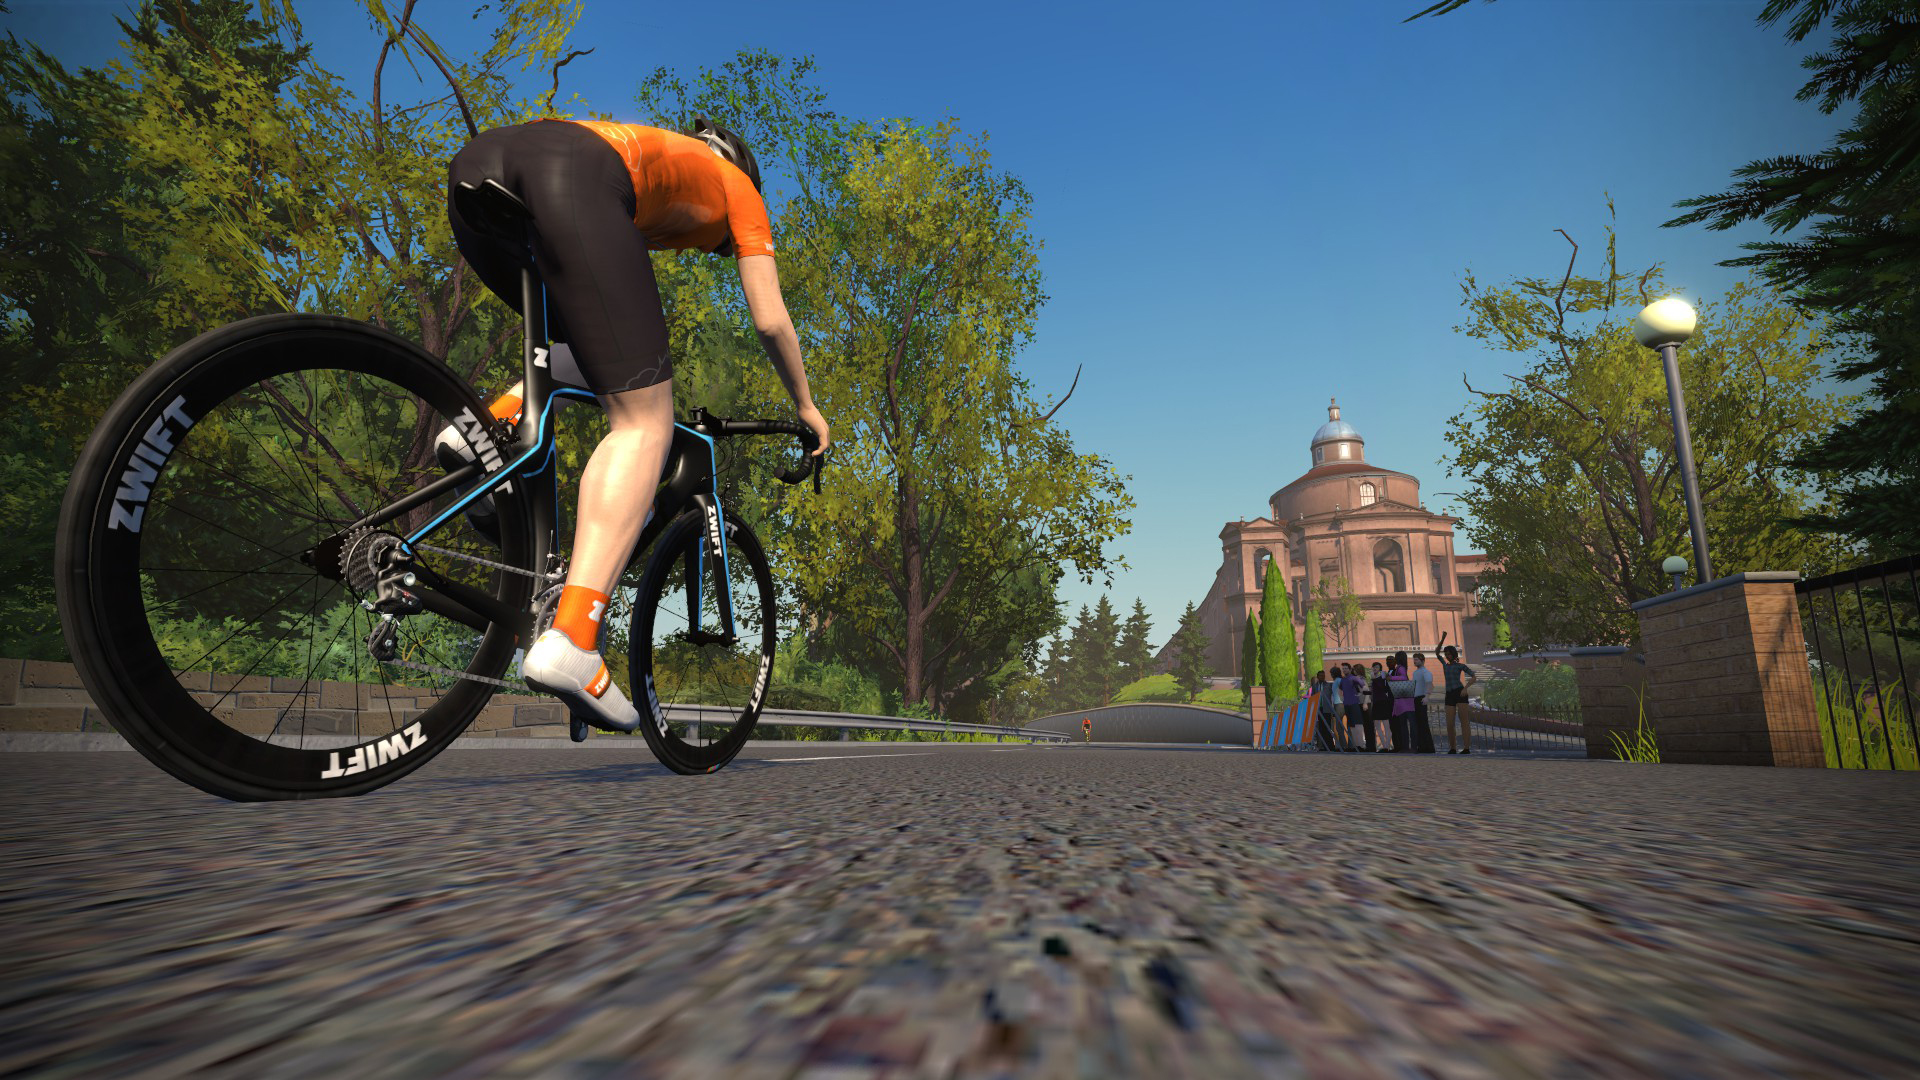 Zwift expands with Giro d'Italia 8 2km prologue course this weekend